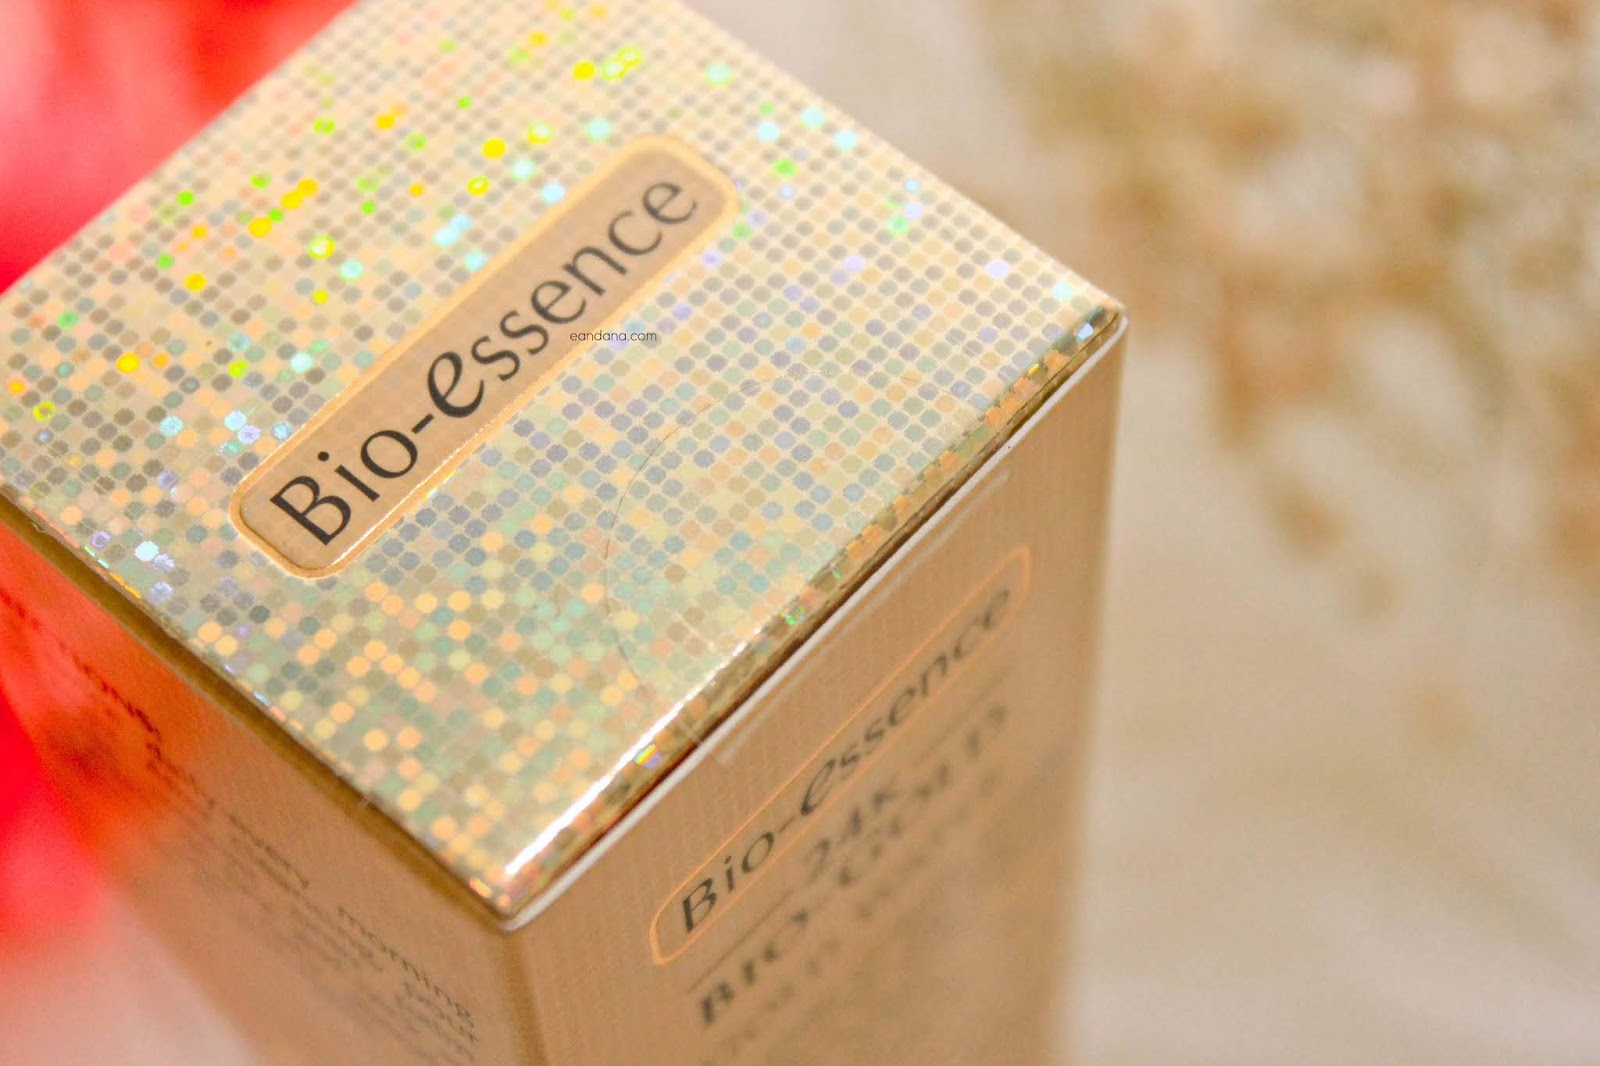 Bio Essence 24k Gold Water